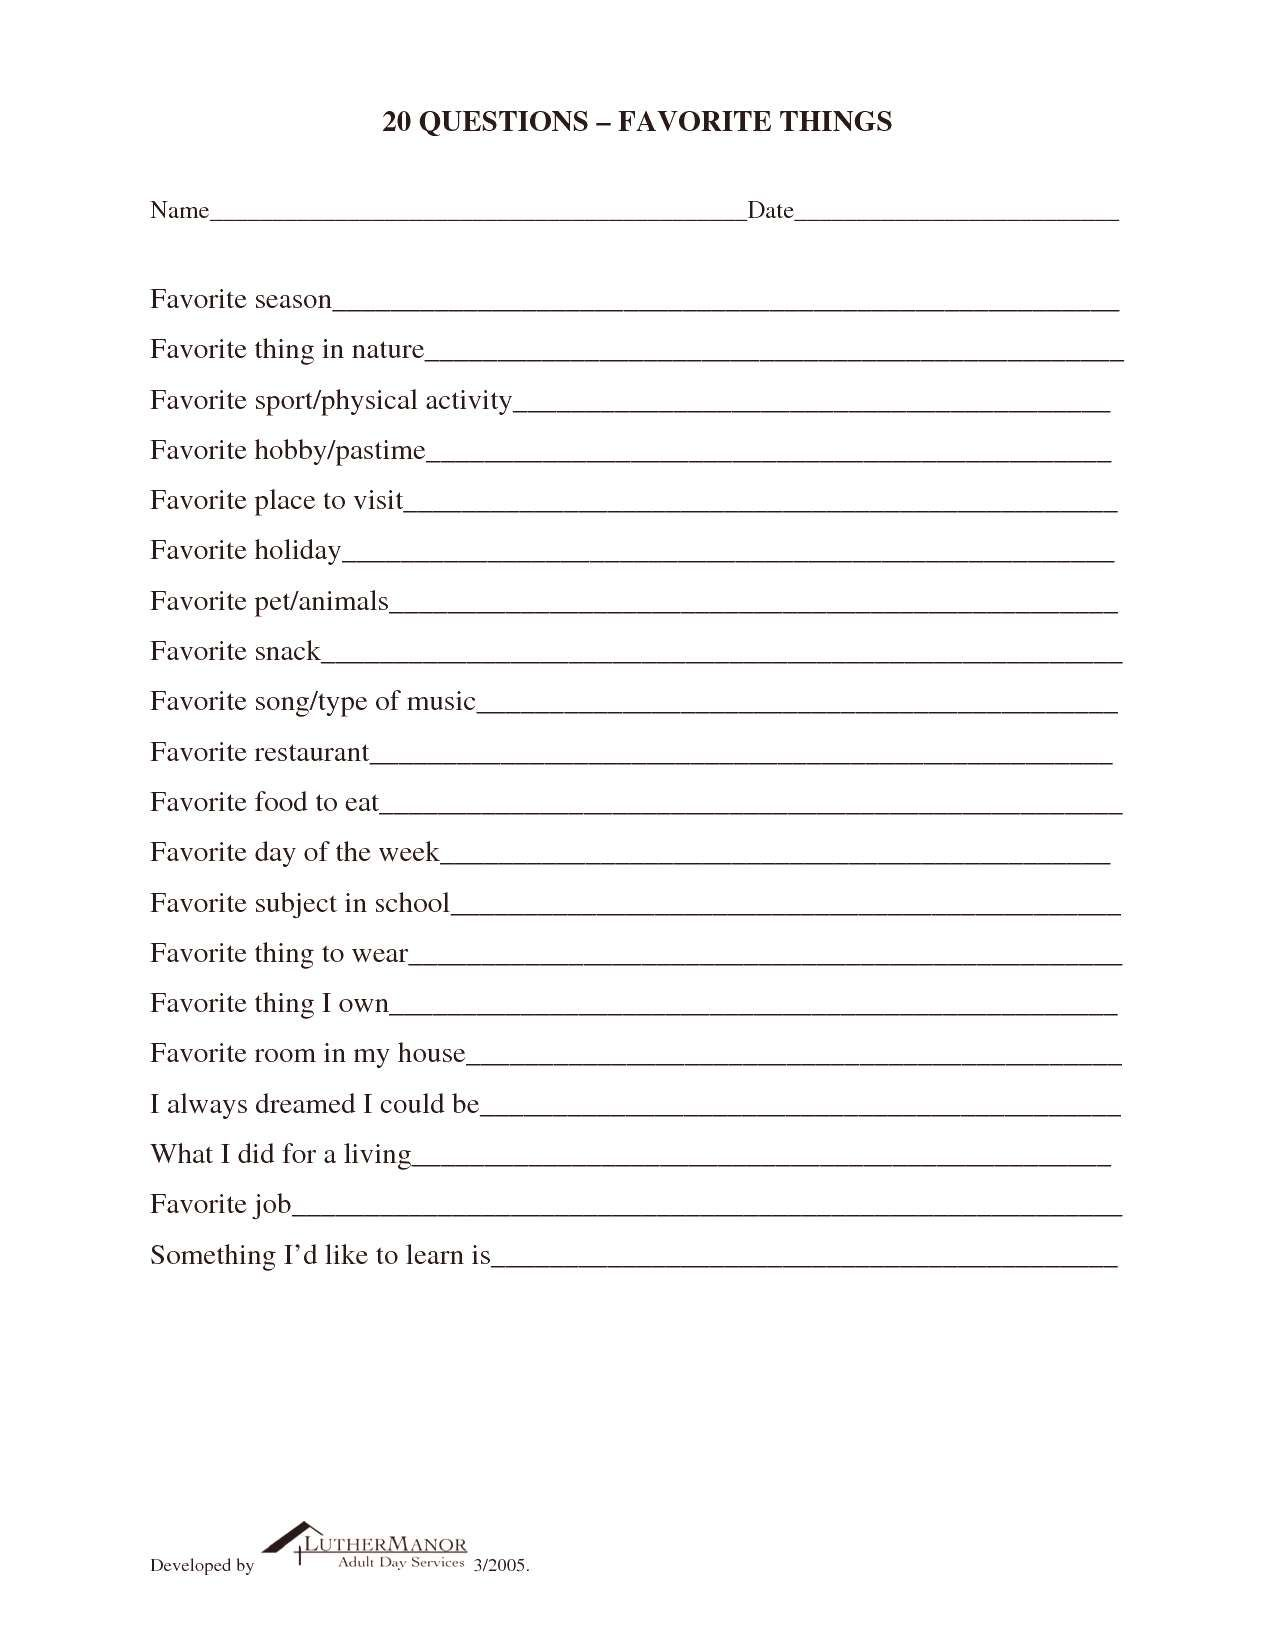 Pin By Melvinna On Journal Writing Prompts In